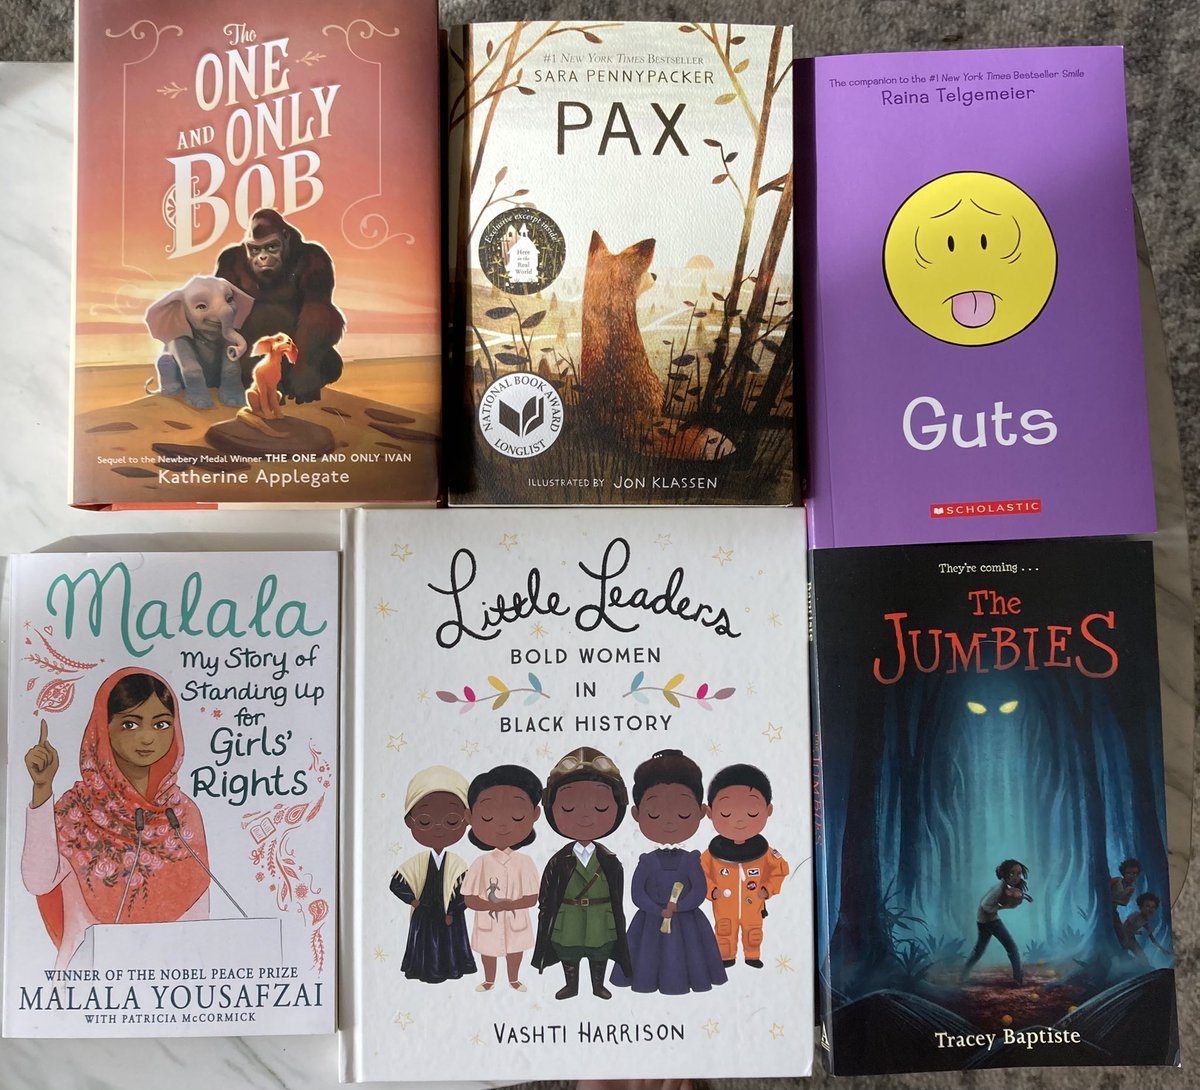 To celebrate #ReadAcrossAmericaDay and #WomensHistoryMonth, we're giving away a copy of each of our favorite books about women or by female authors! Just follow us and re-tweet this post for your chance to win! #WorldBookDay